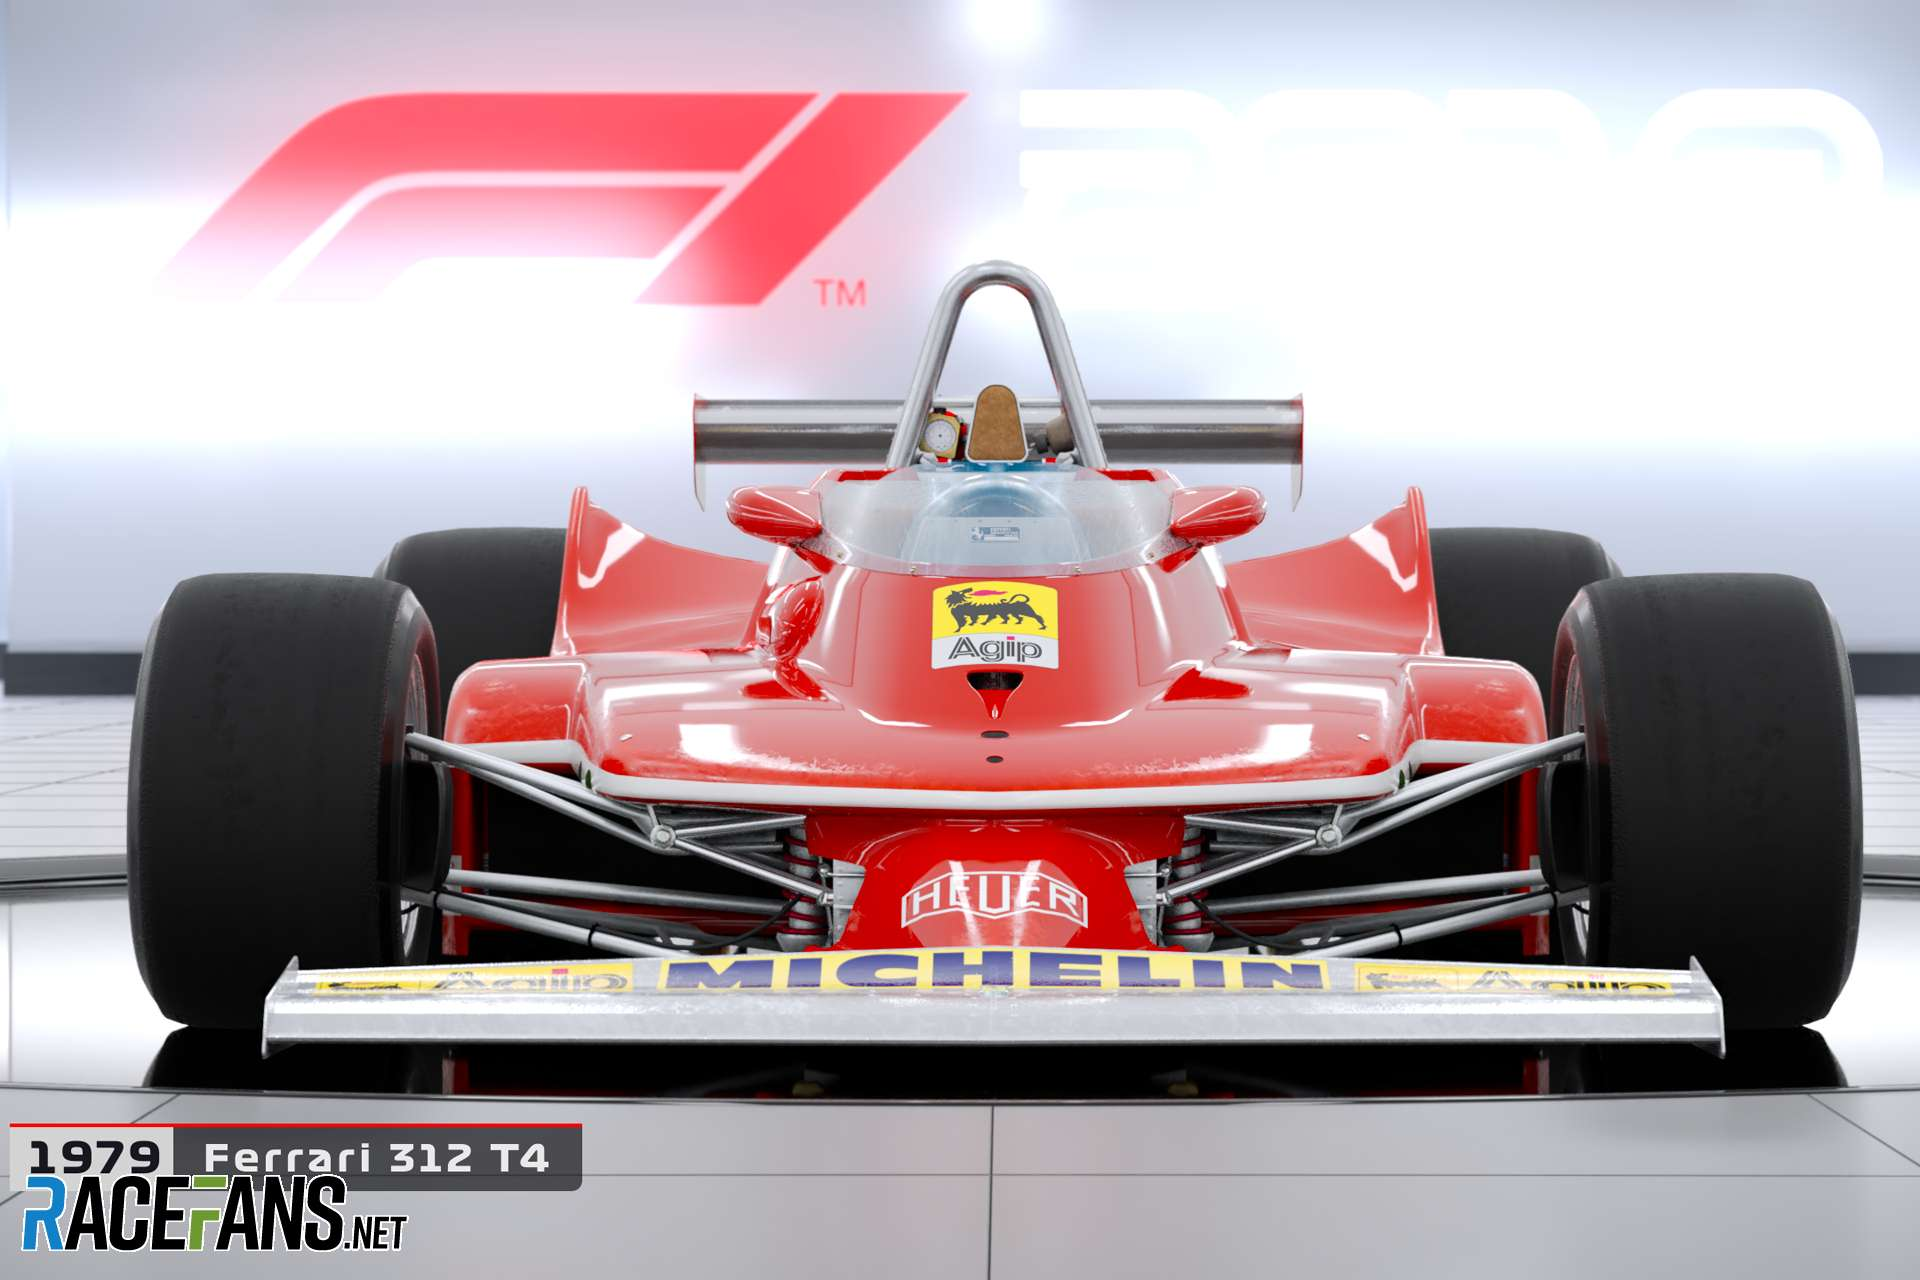 20 classic cars confirmed for Codemasters' F1 2018 · RaceFans